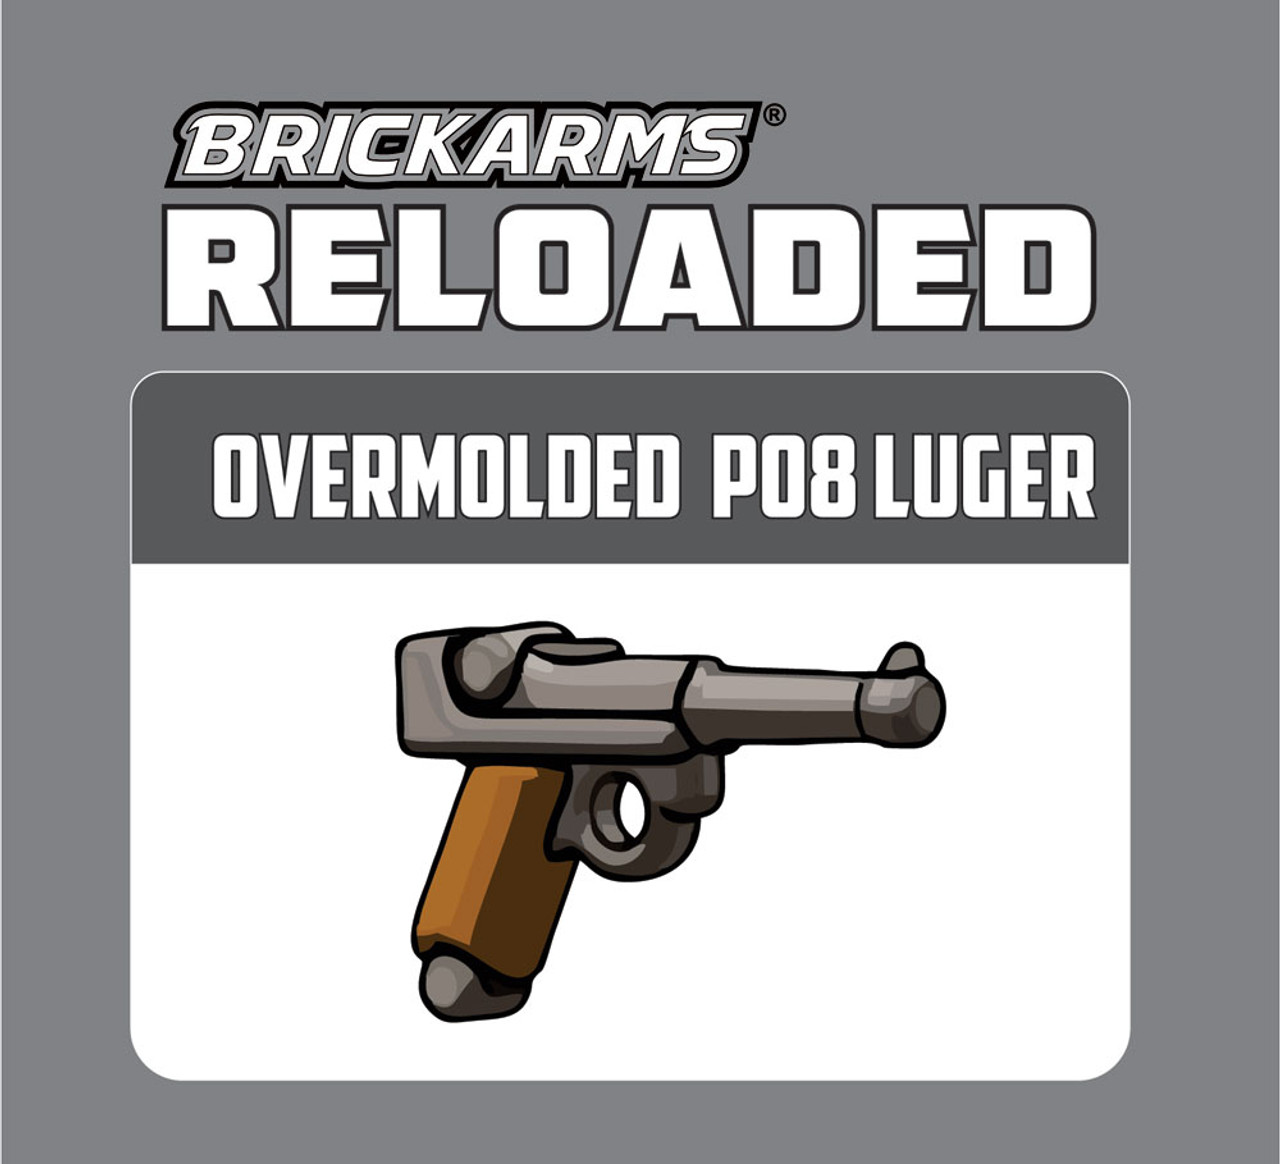 BrickArms Reloaded Overmolded P08 Luger